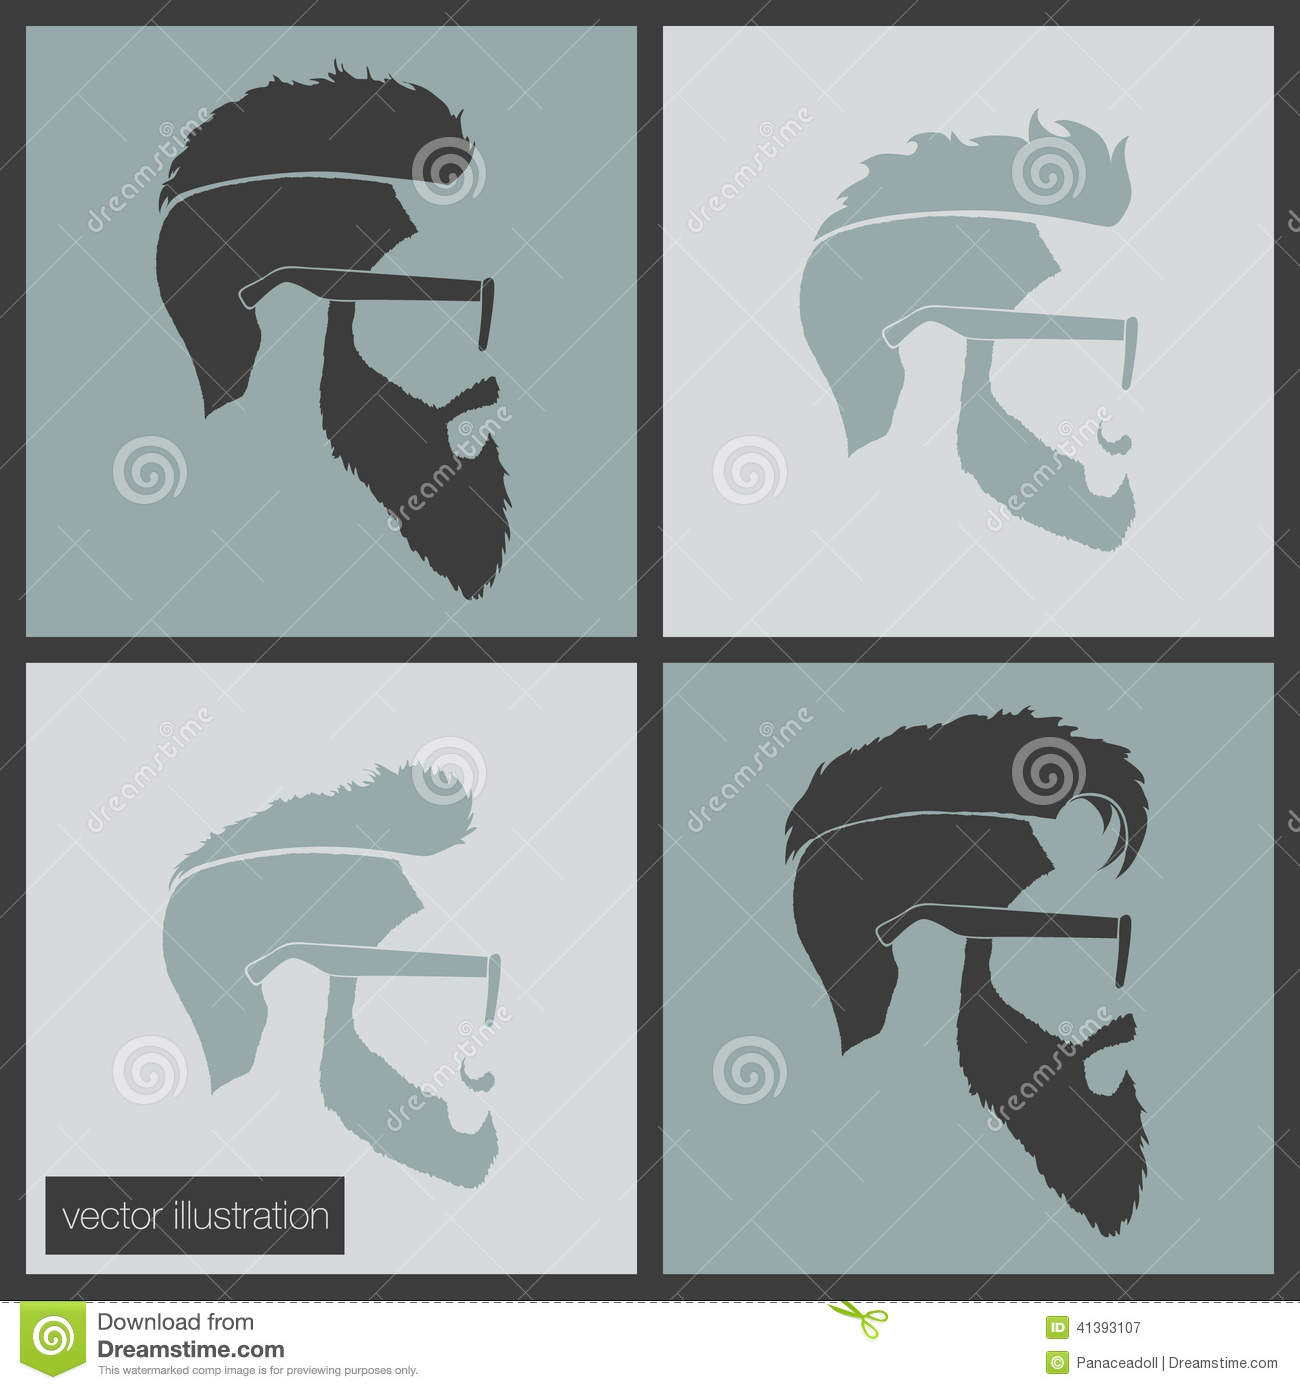 Icons Hairstyles Beard Stock Vector - Image: 41393107